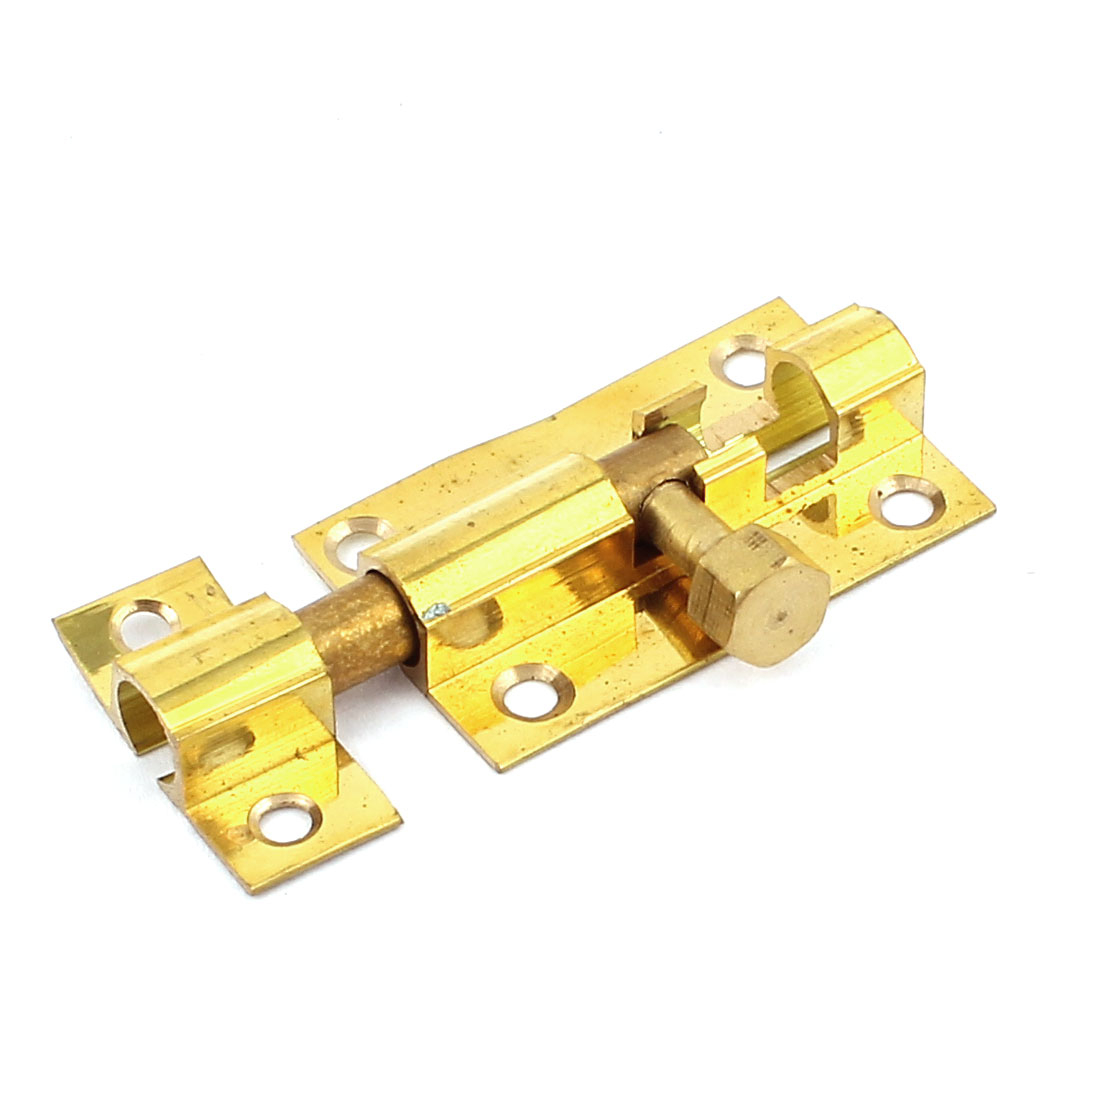 "Door Window Latch Screw in Barrel Bolt Hardware 1.5"" Brass Finish"